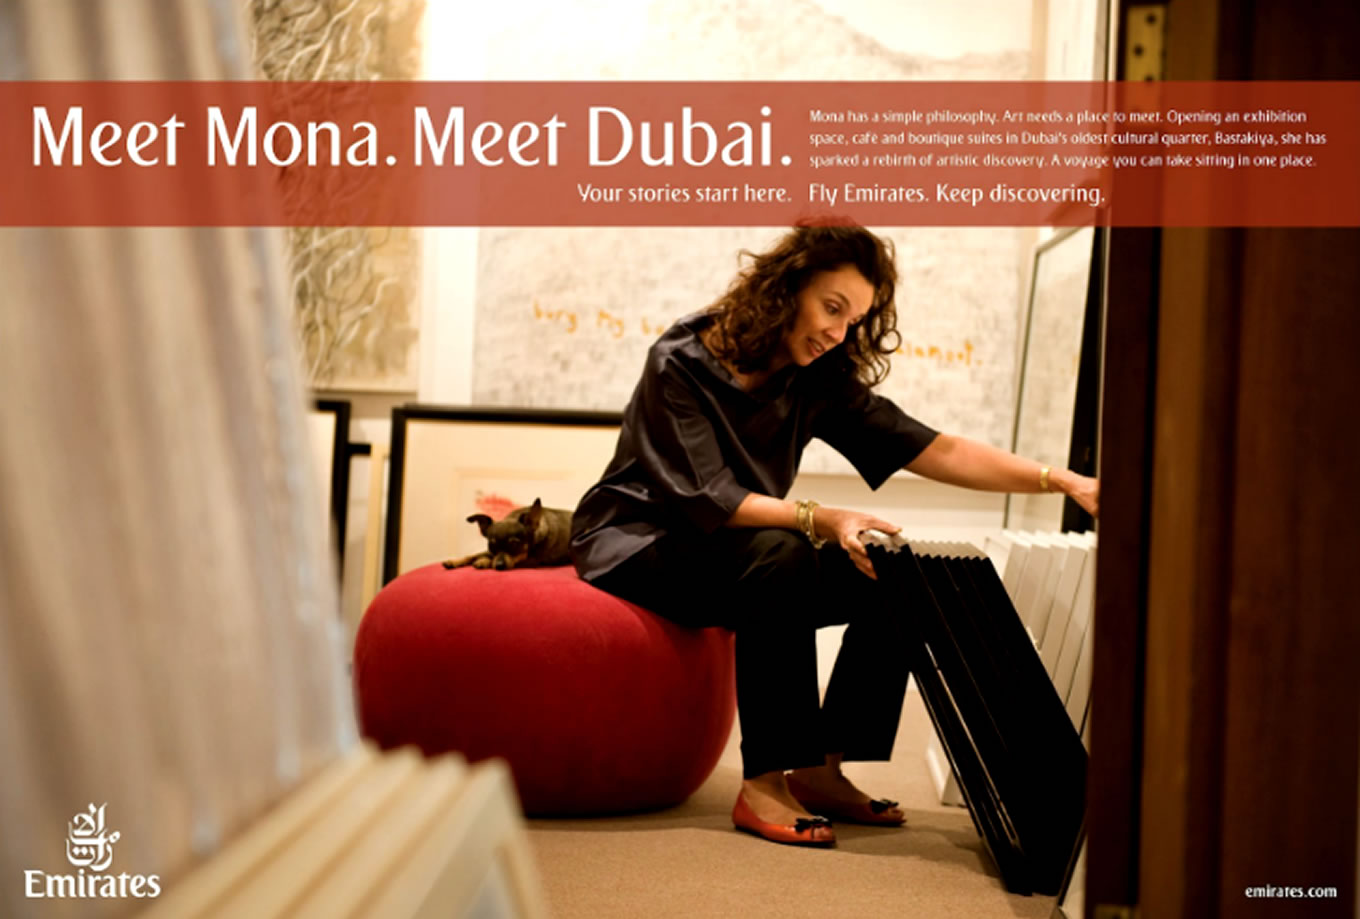 Meet Mona, Meet Dubai Advertising Campaign by Emirates